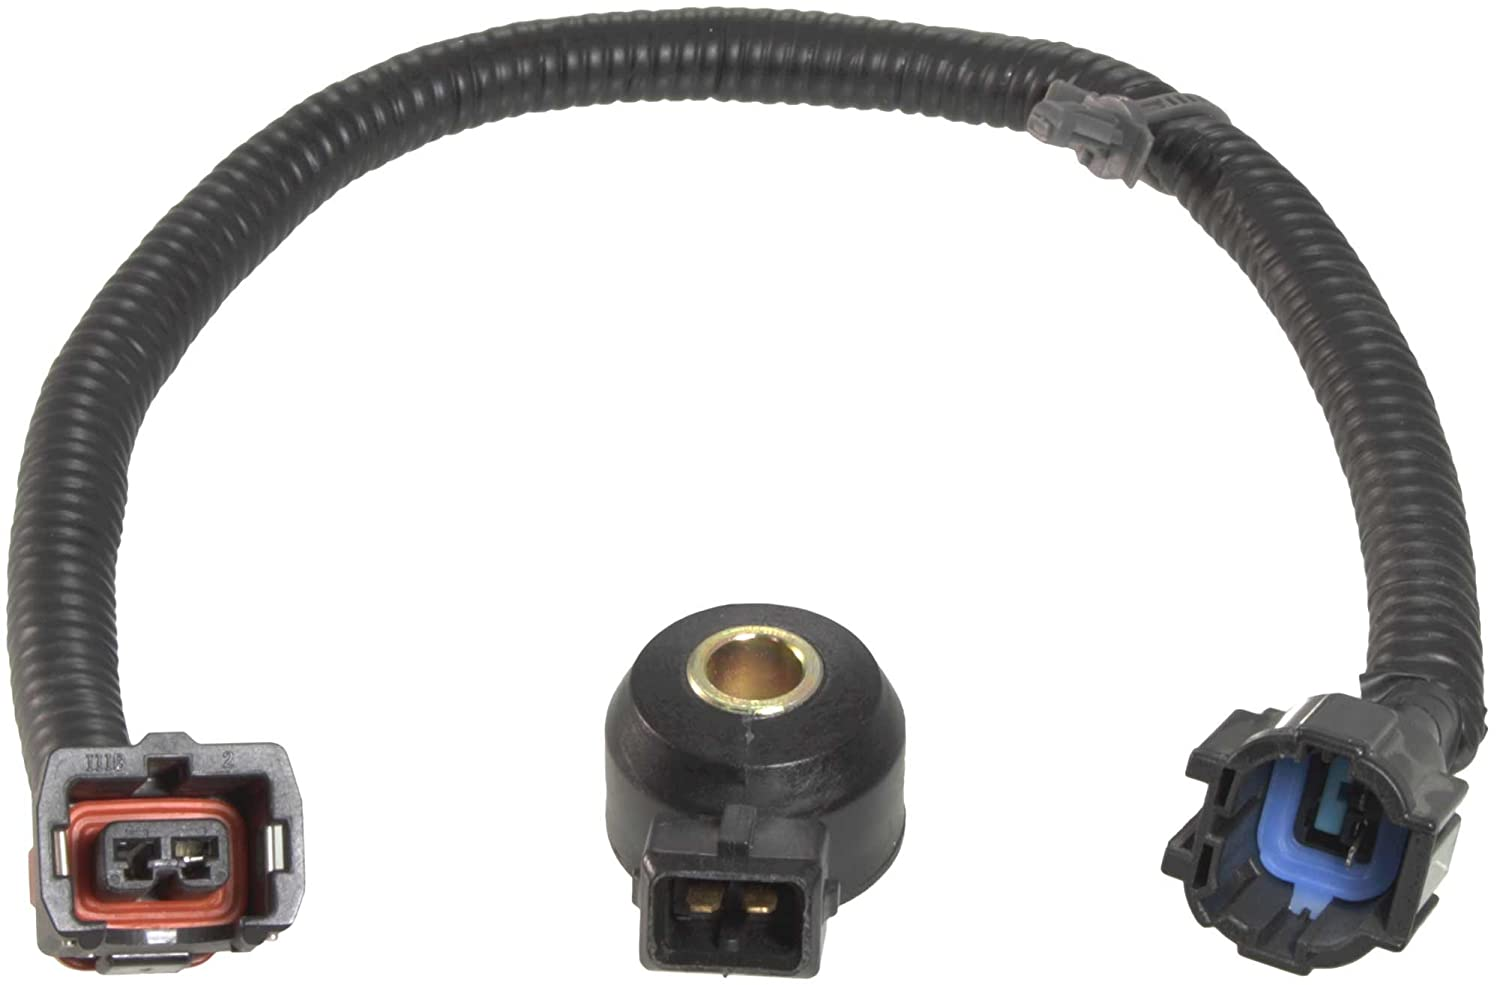 Apdty 028252 Knock Sensor With New Wiring Harness Nissan Pigtail Connector Fits Select 1990 2002 Or Infiniti Mode Ls Listed In The Compatibility